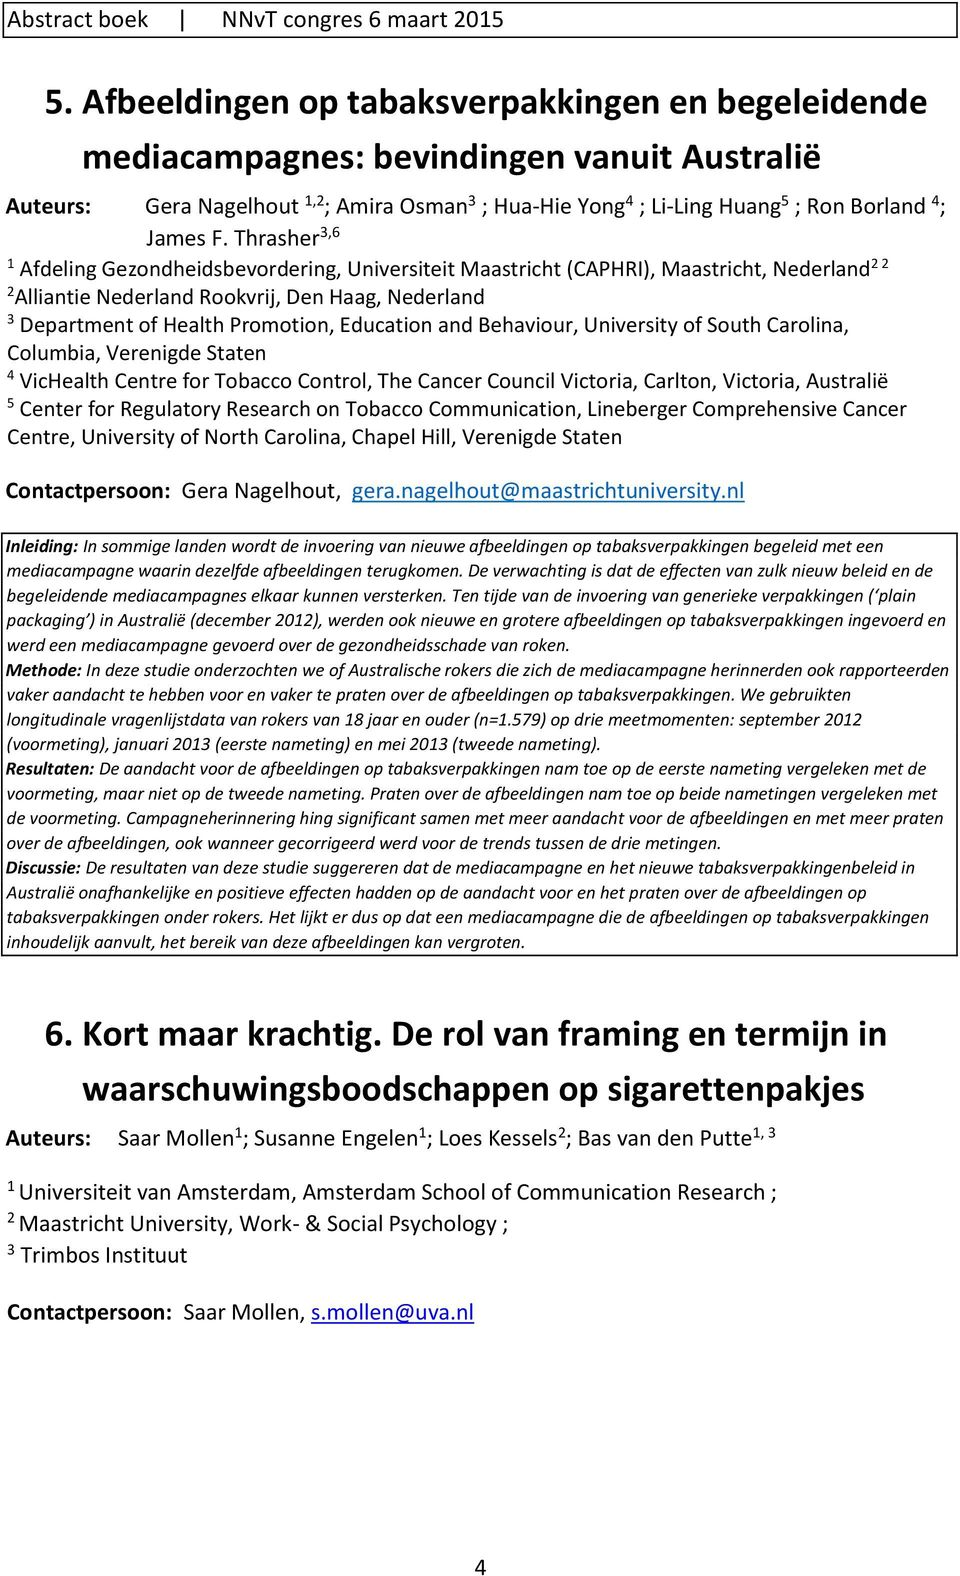 Thrasher,6 Afdeling Gezondheidsbevordering, Universiteit Maastricht (CAPHRI), Maastricht, Nederland Alliantie Nederland Rookvrij, Den Haag, Nederland Department of Health Promotion, Education and